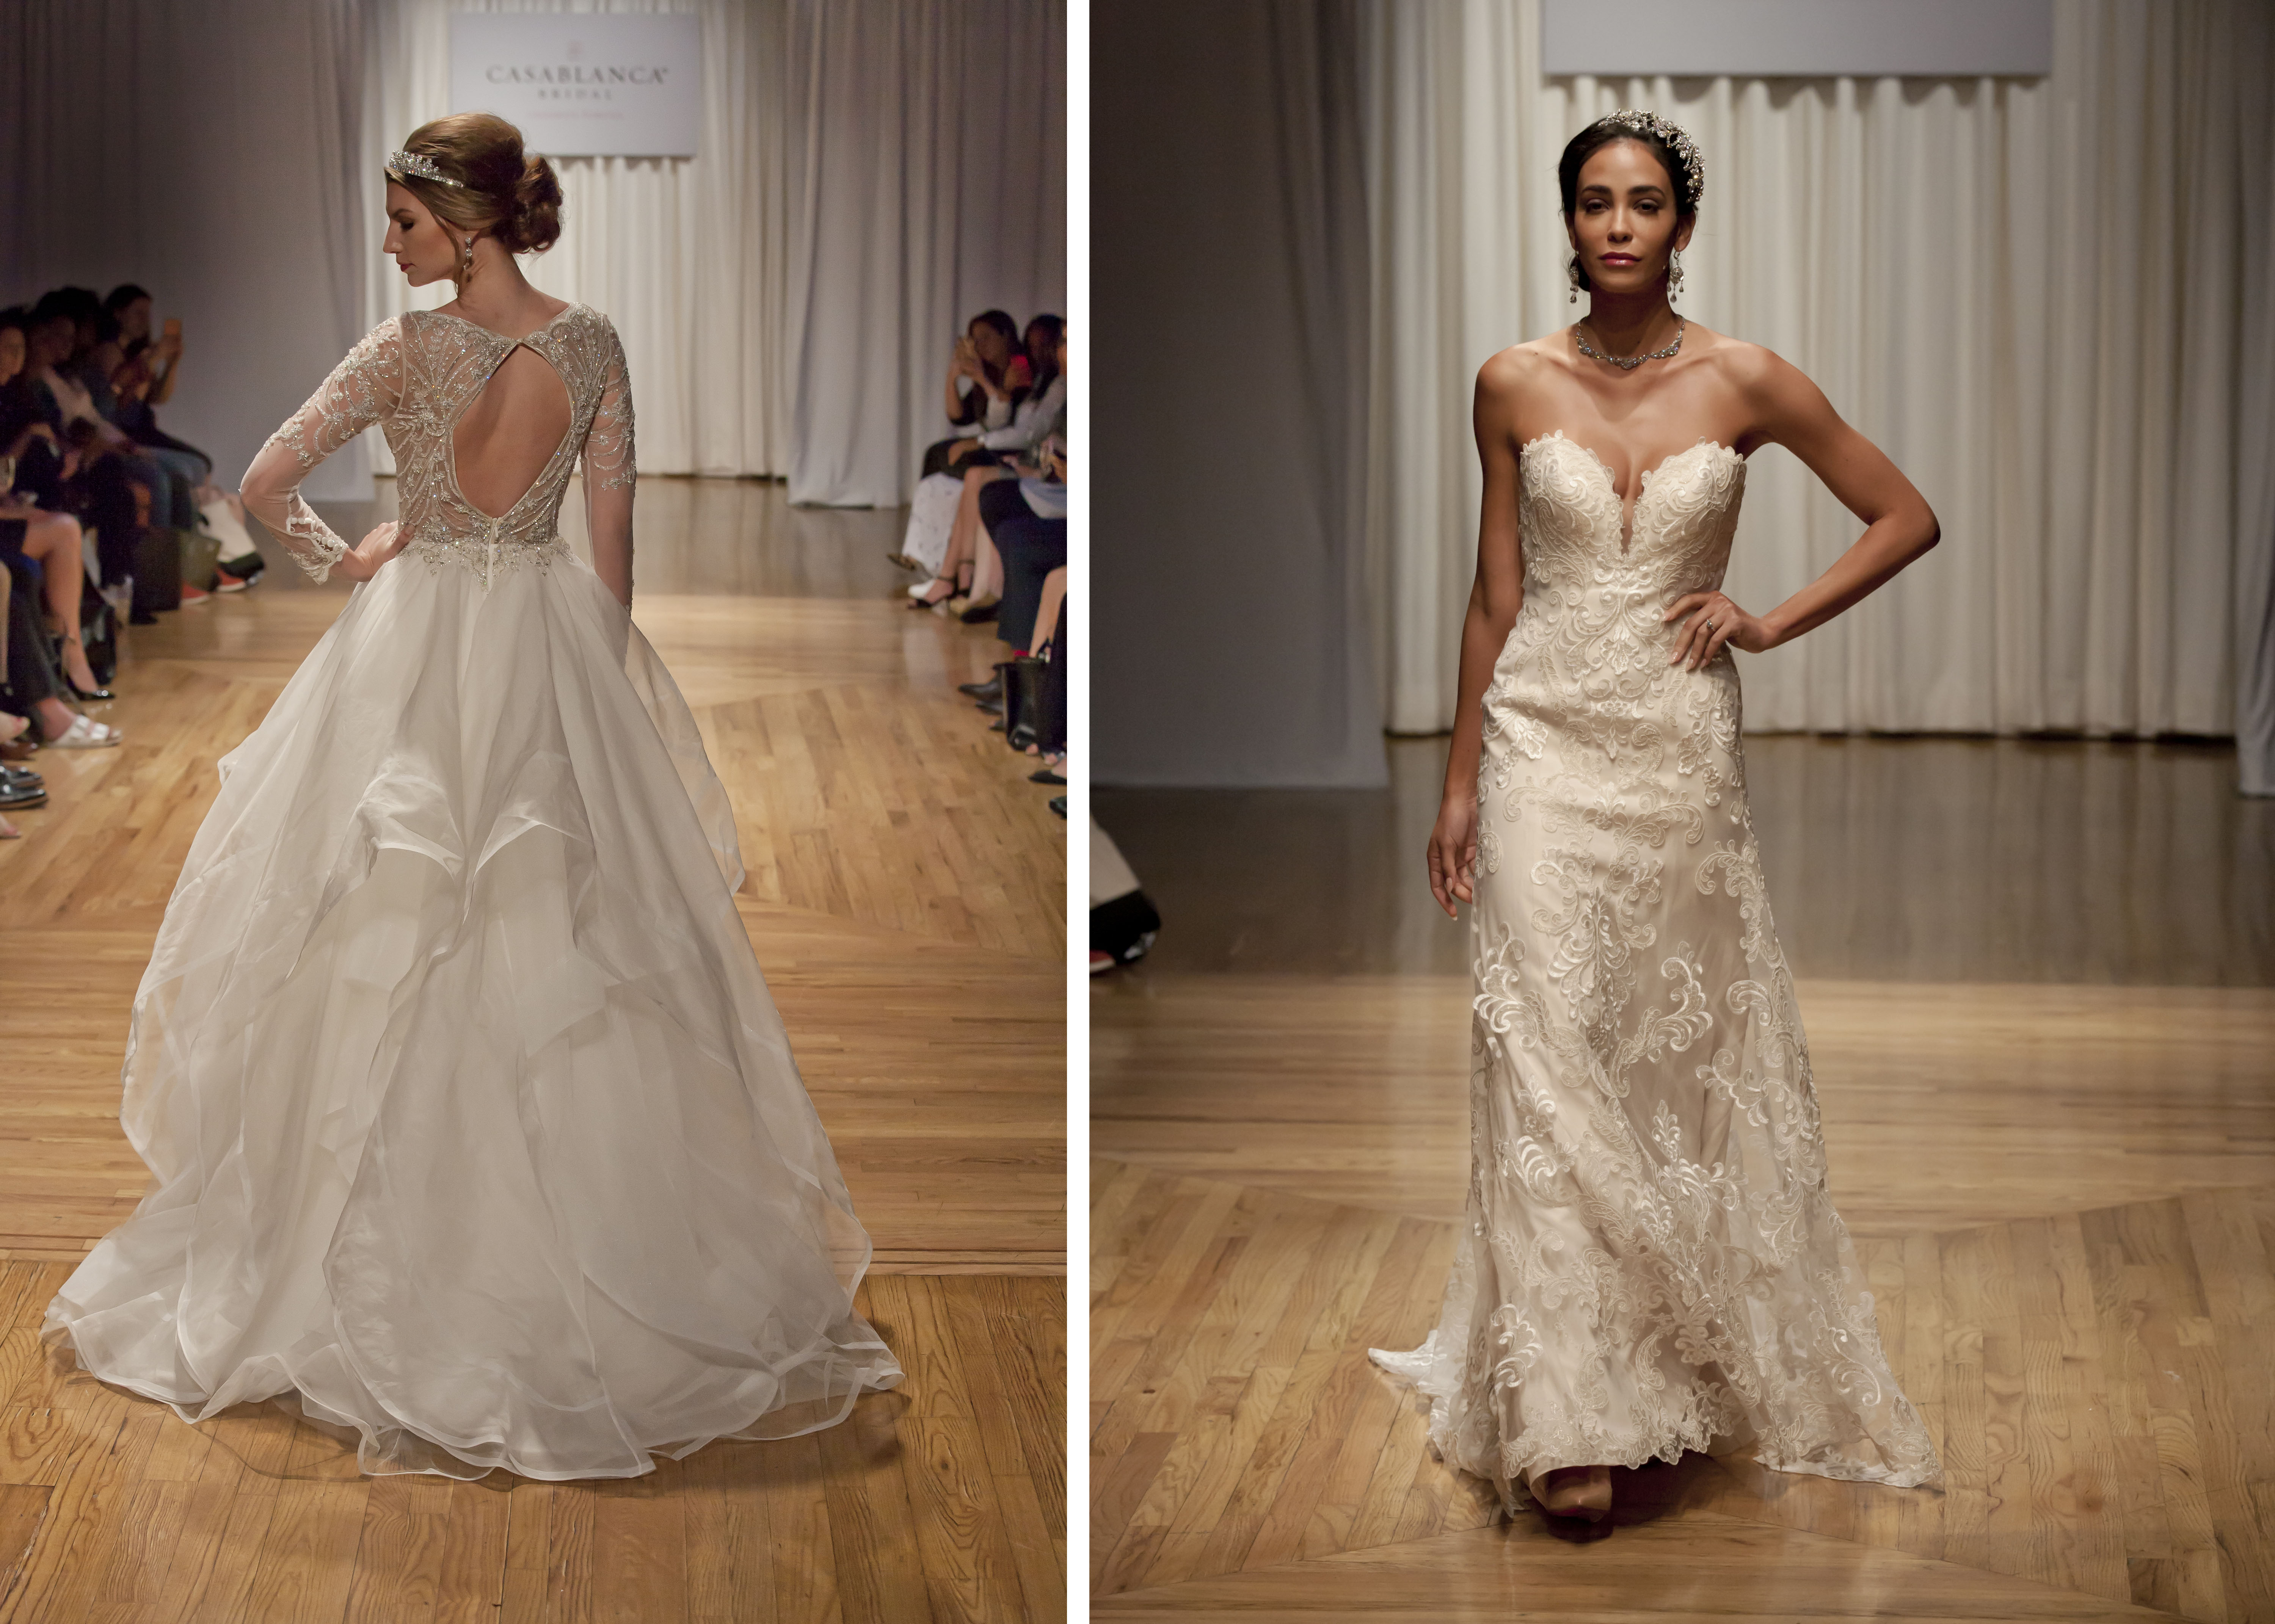 Casabalnca Bridal Press Runway Show 20th Anniversary Party Preview